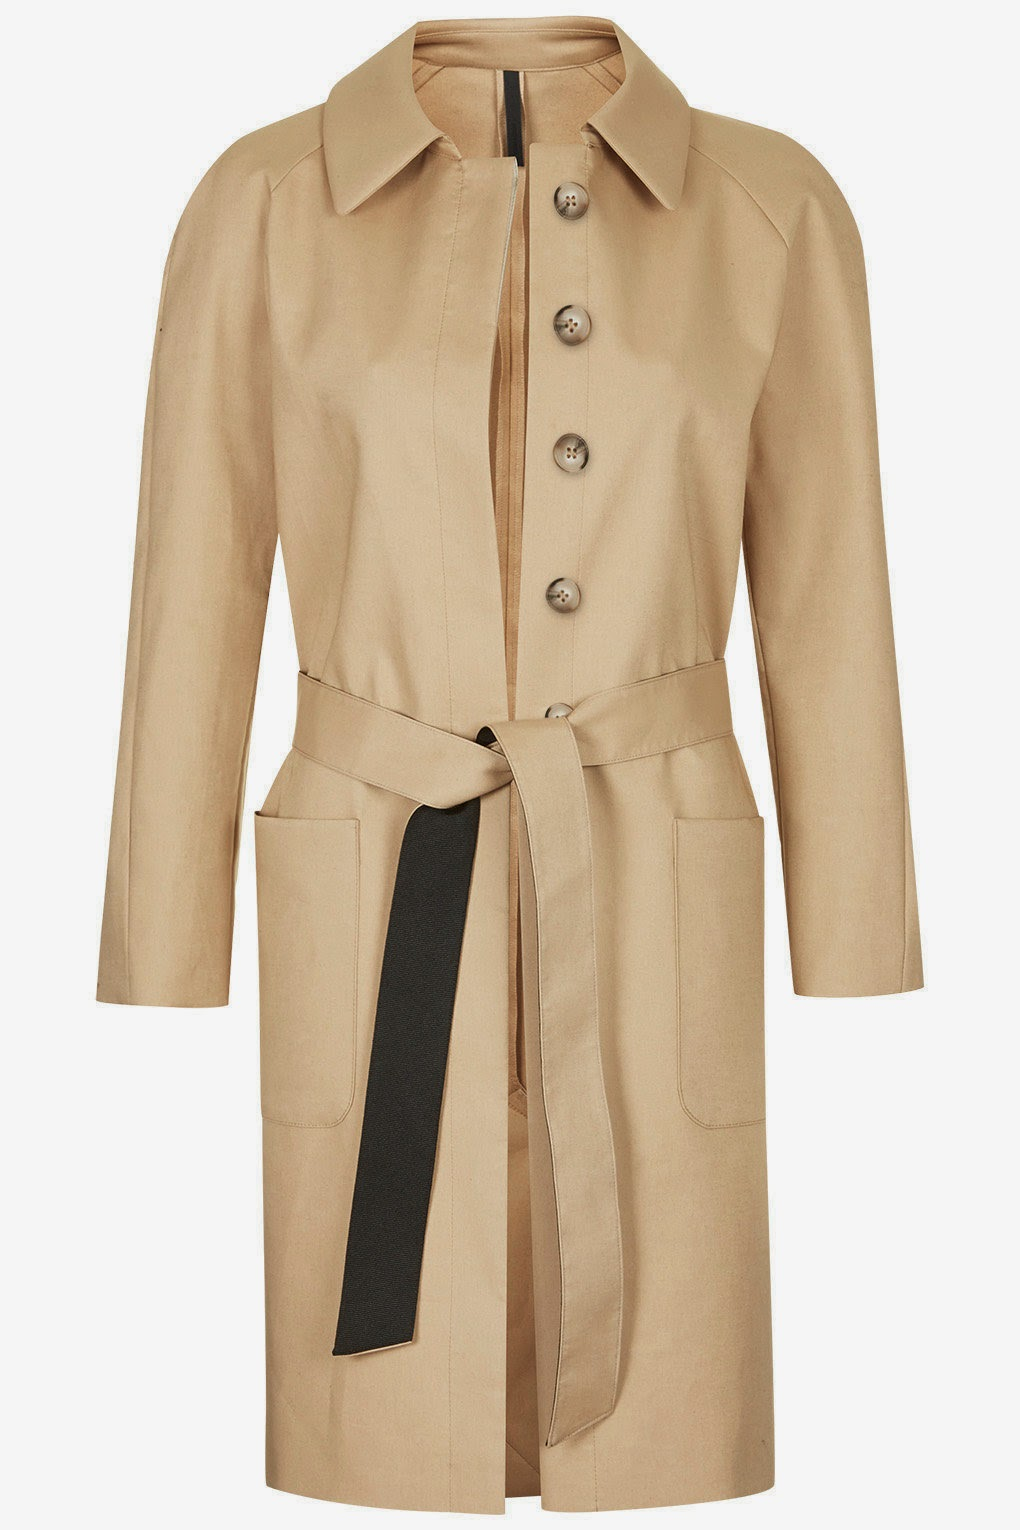 boutique trenchcoat, 2015 mac coat, 2015 topshop trenchcoat,